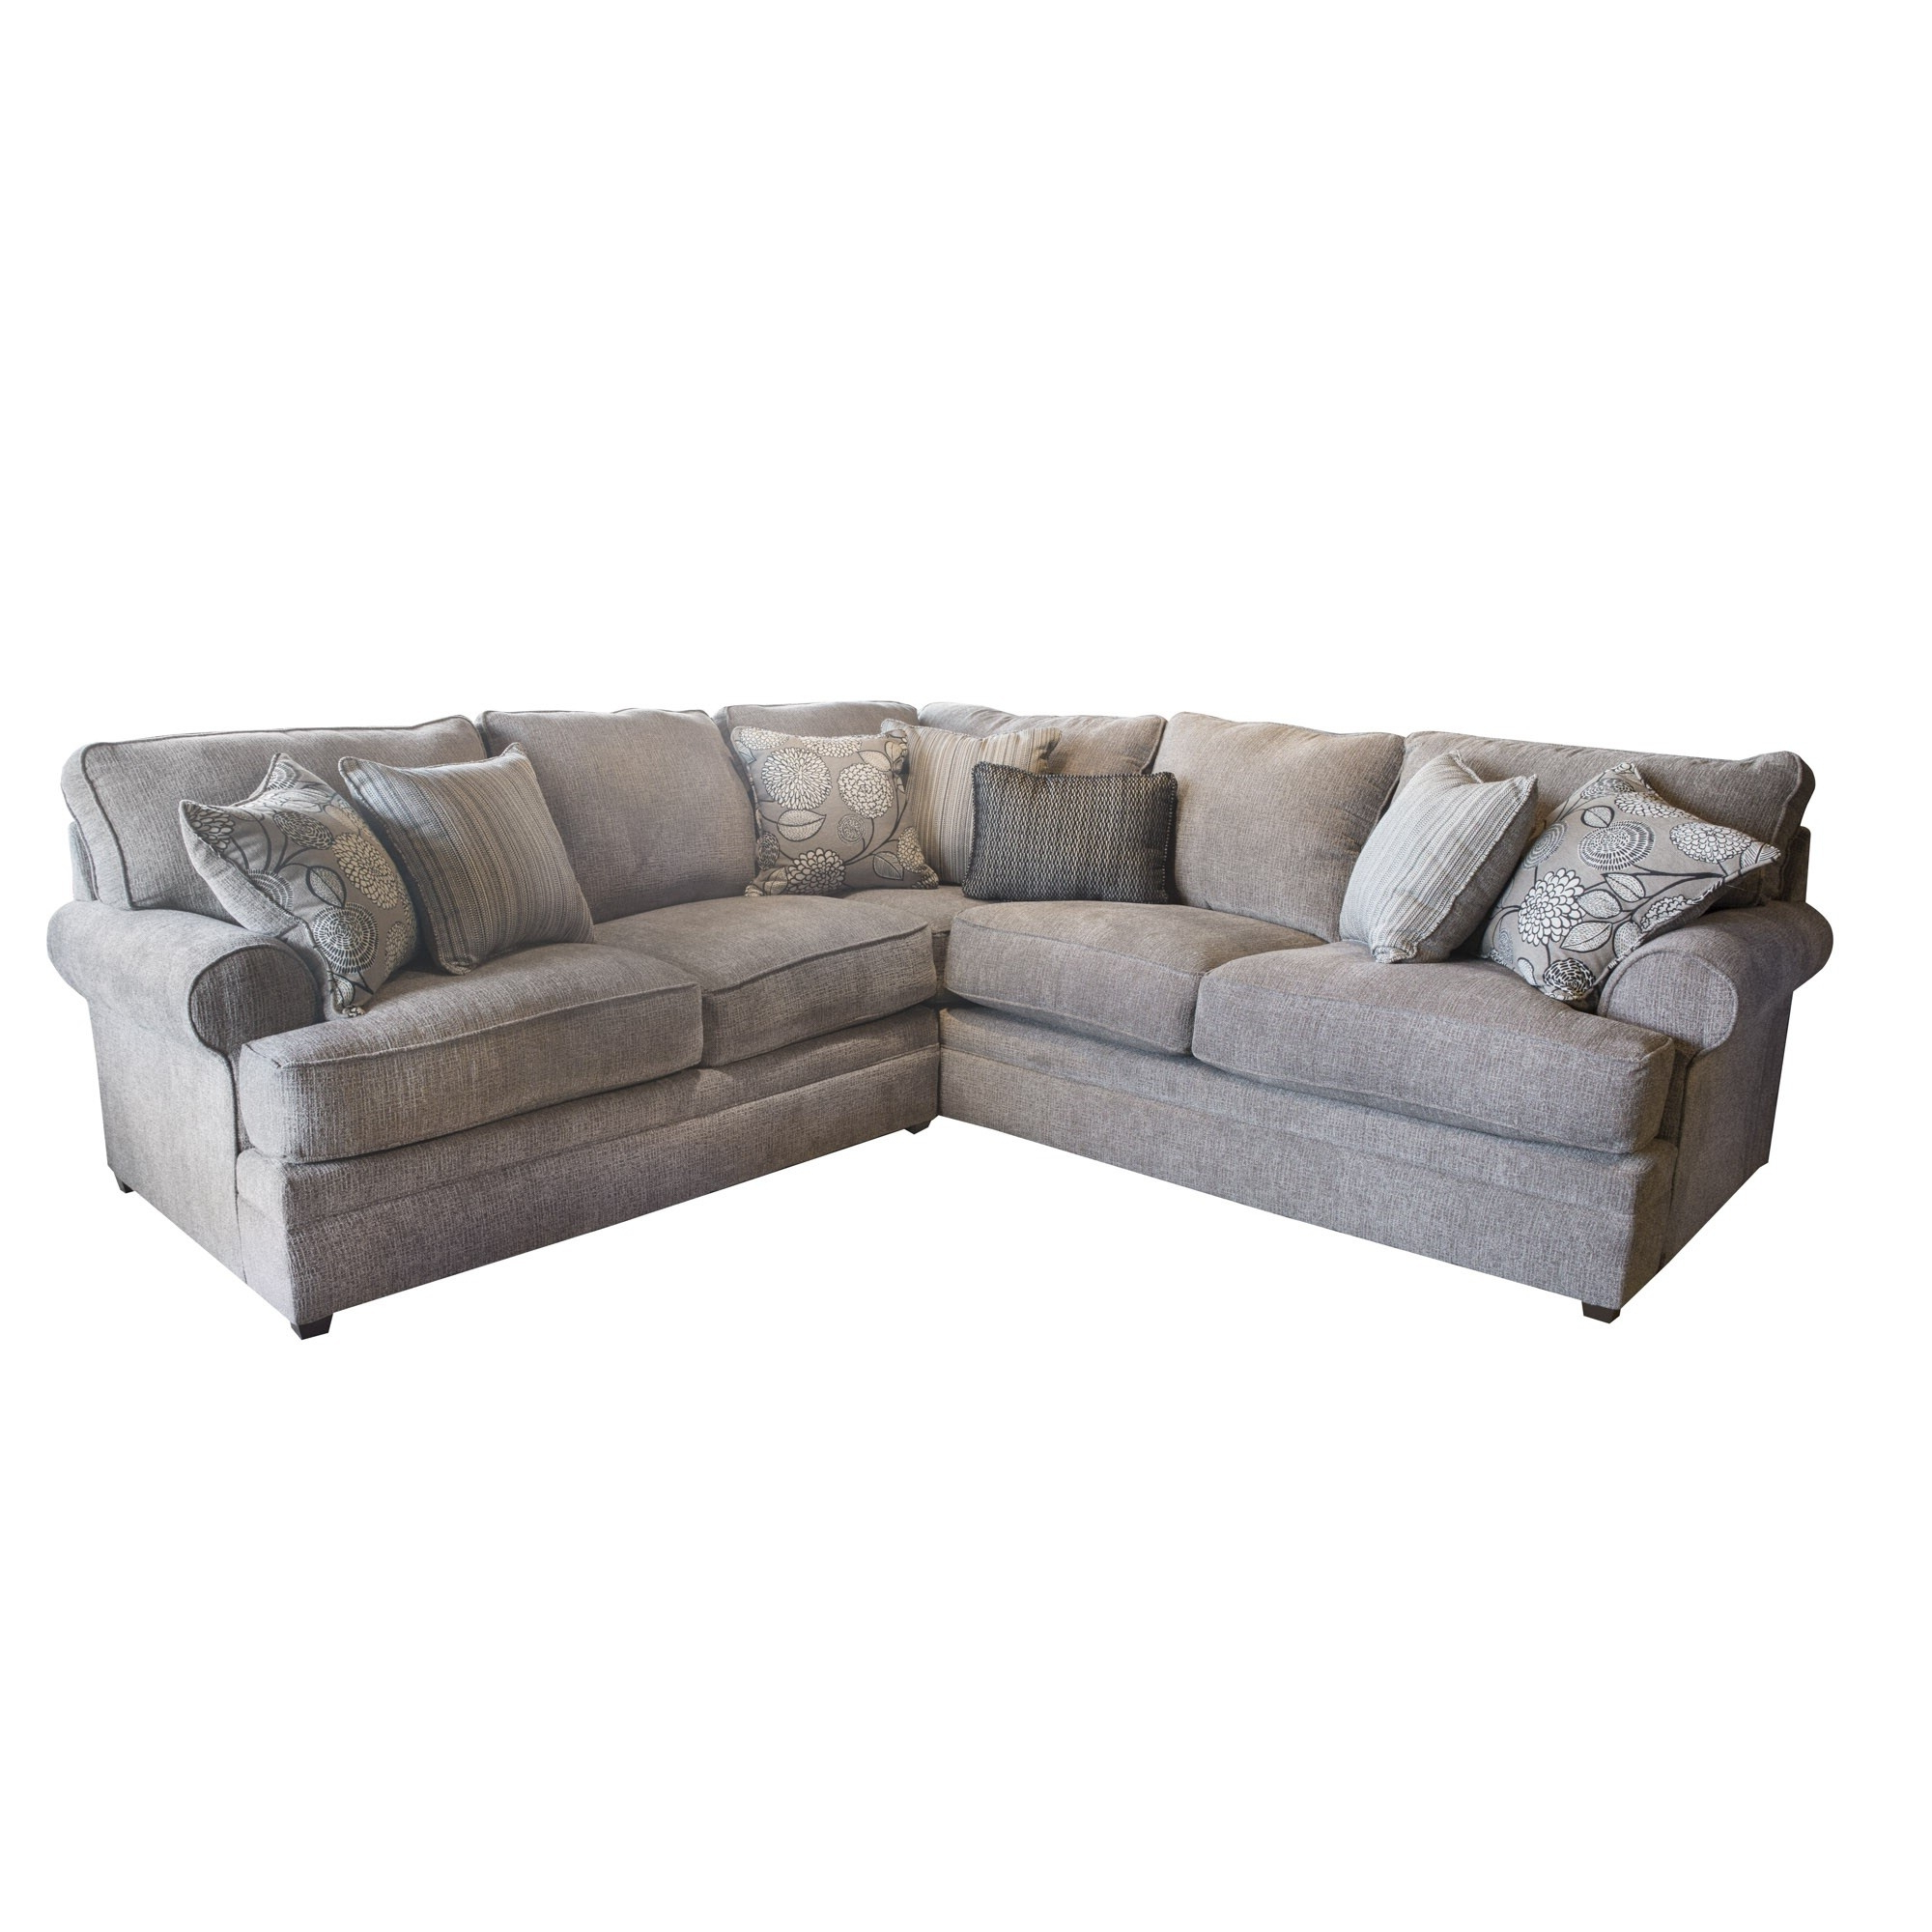 Most Recent Travis Cognac Leather 6 Piece Power Reclining Sectionals With Power Headrest & Usb Inside Harper Fabric 6 Piece Modular Sectional Sofa (View 6 of 20)